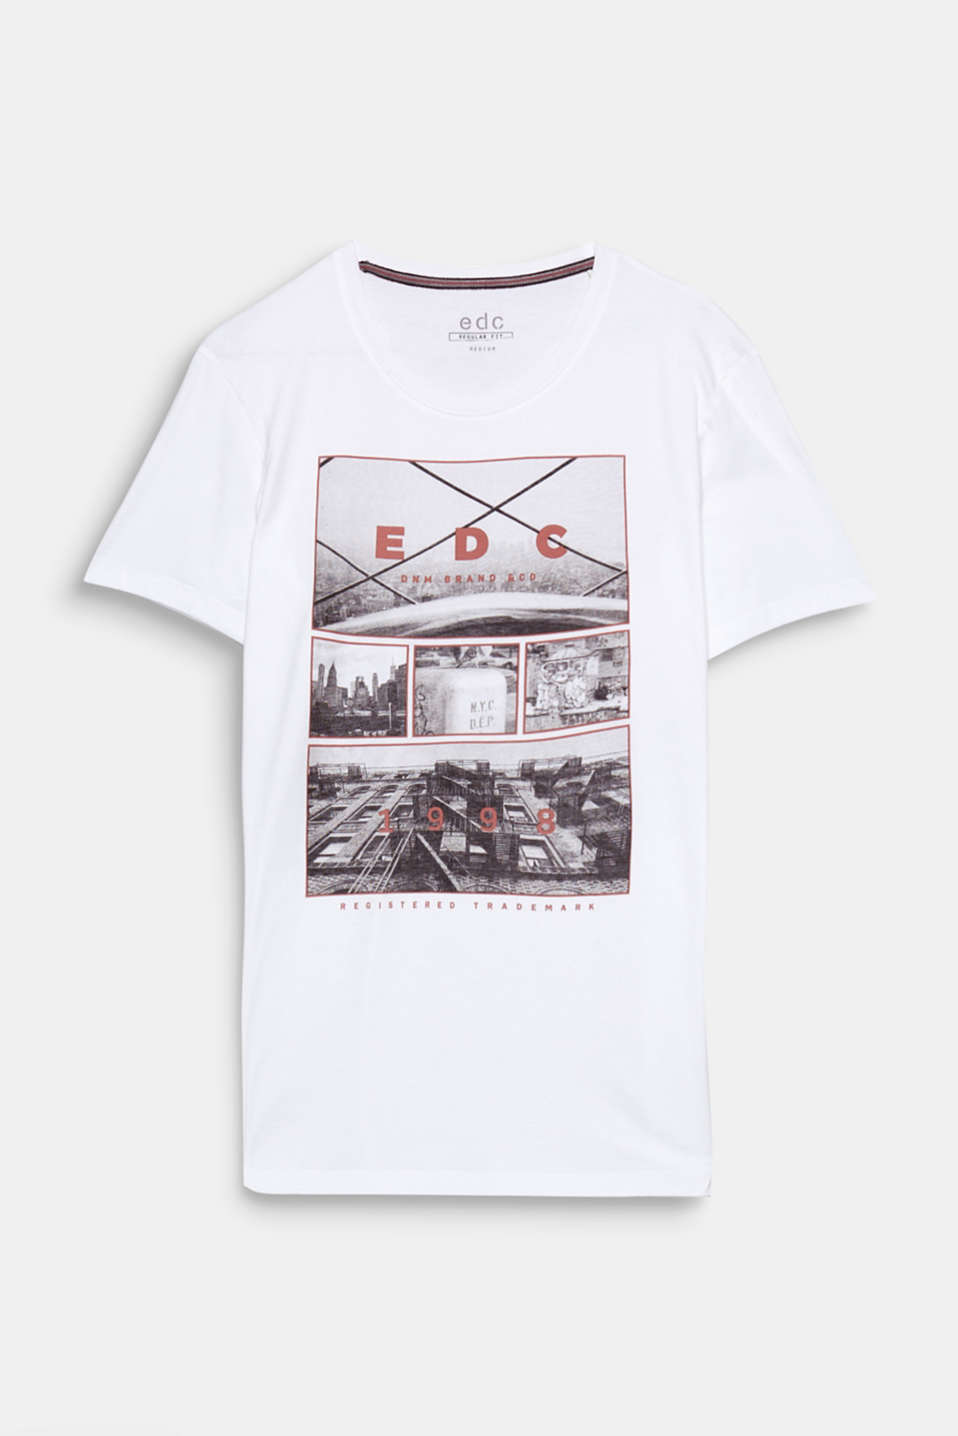 The photo print in a high-quality black and white look gives this t-shirt its urban look.